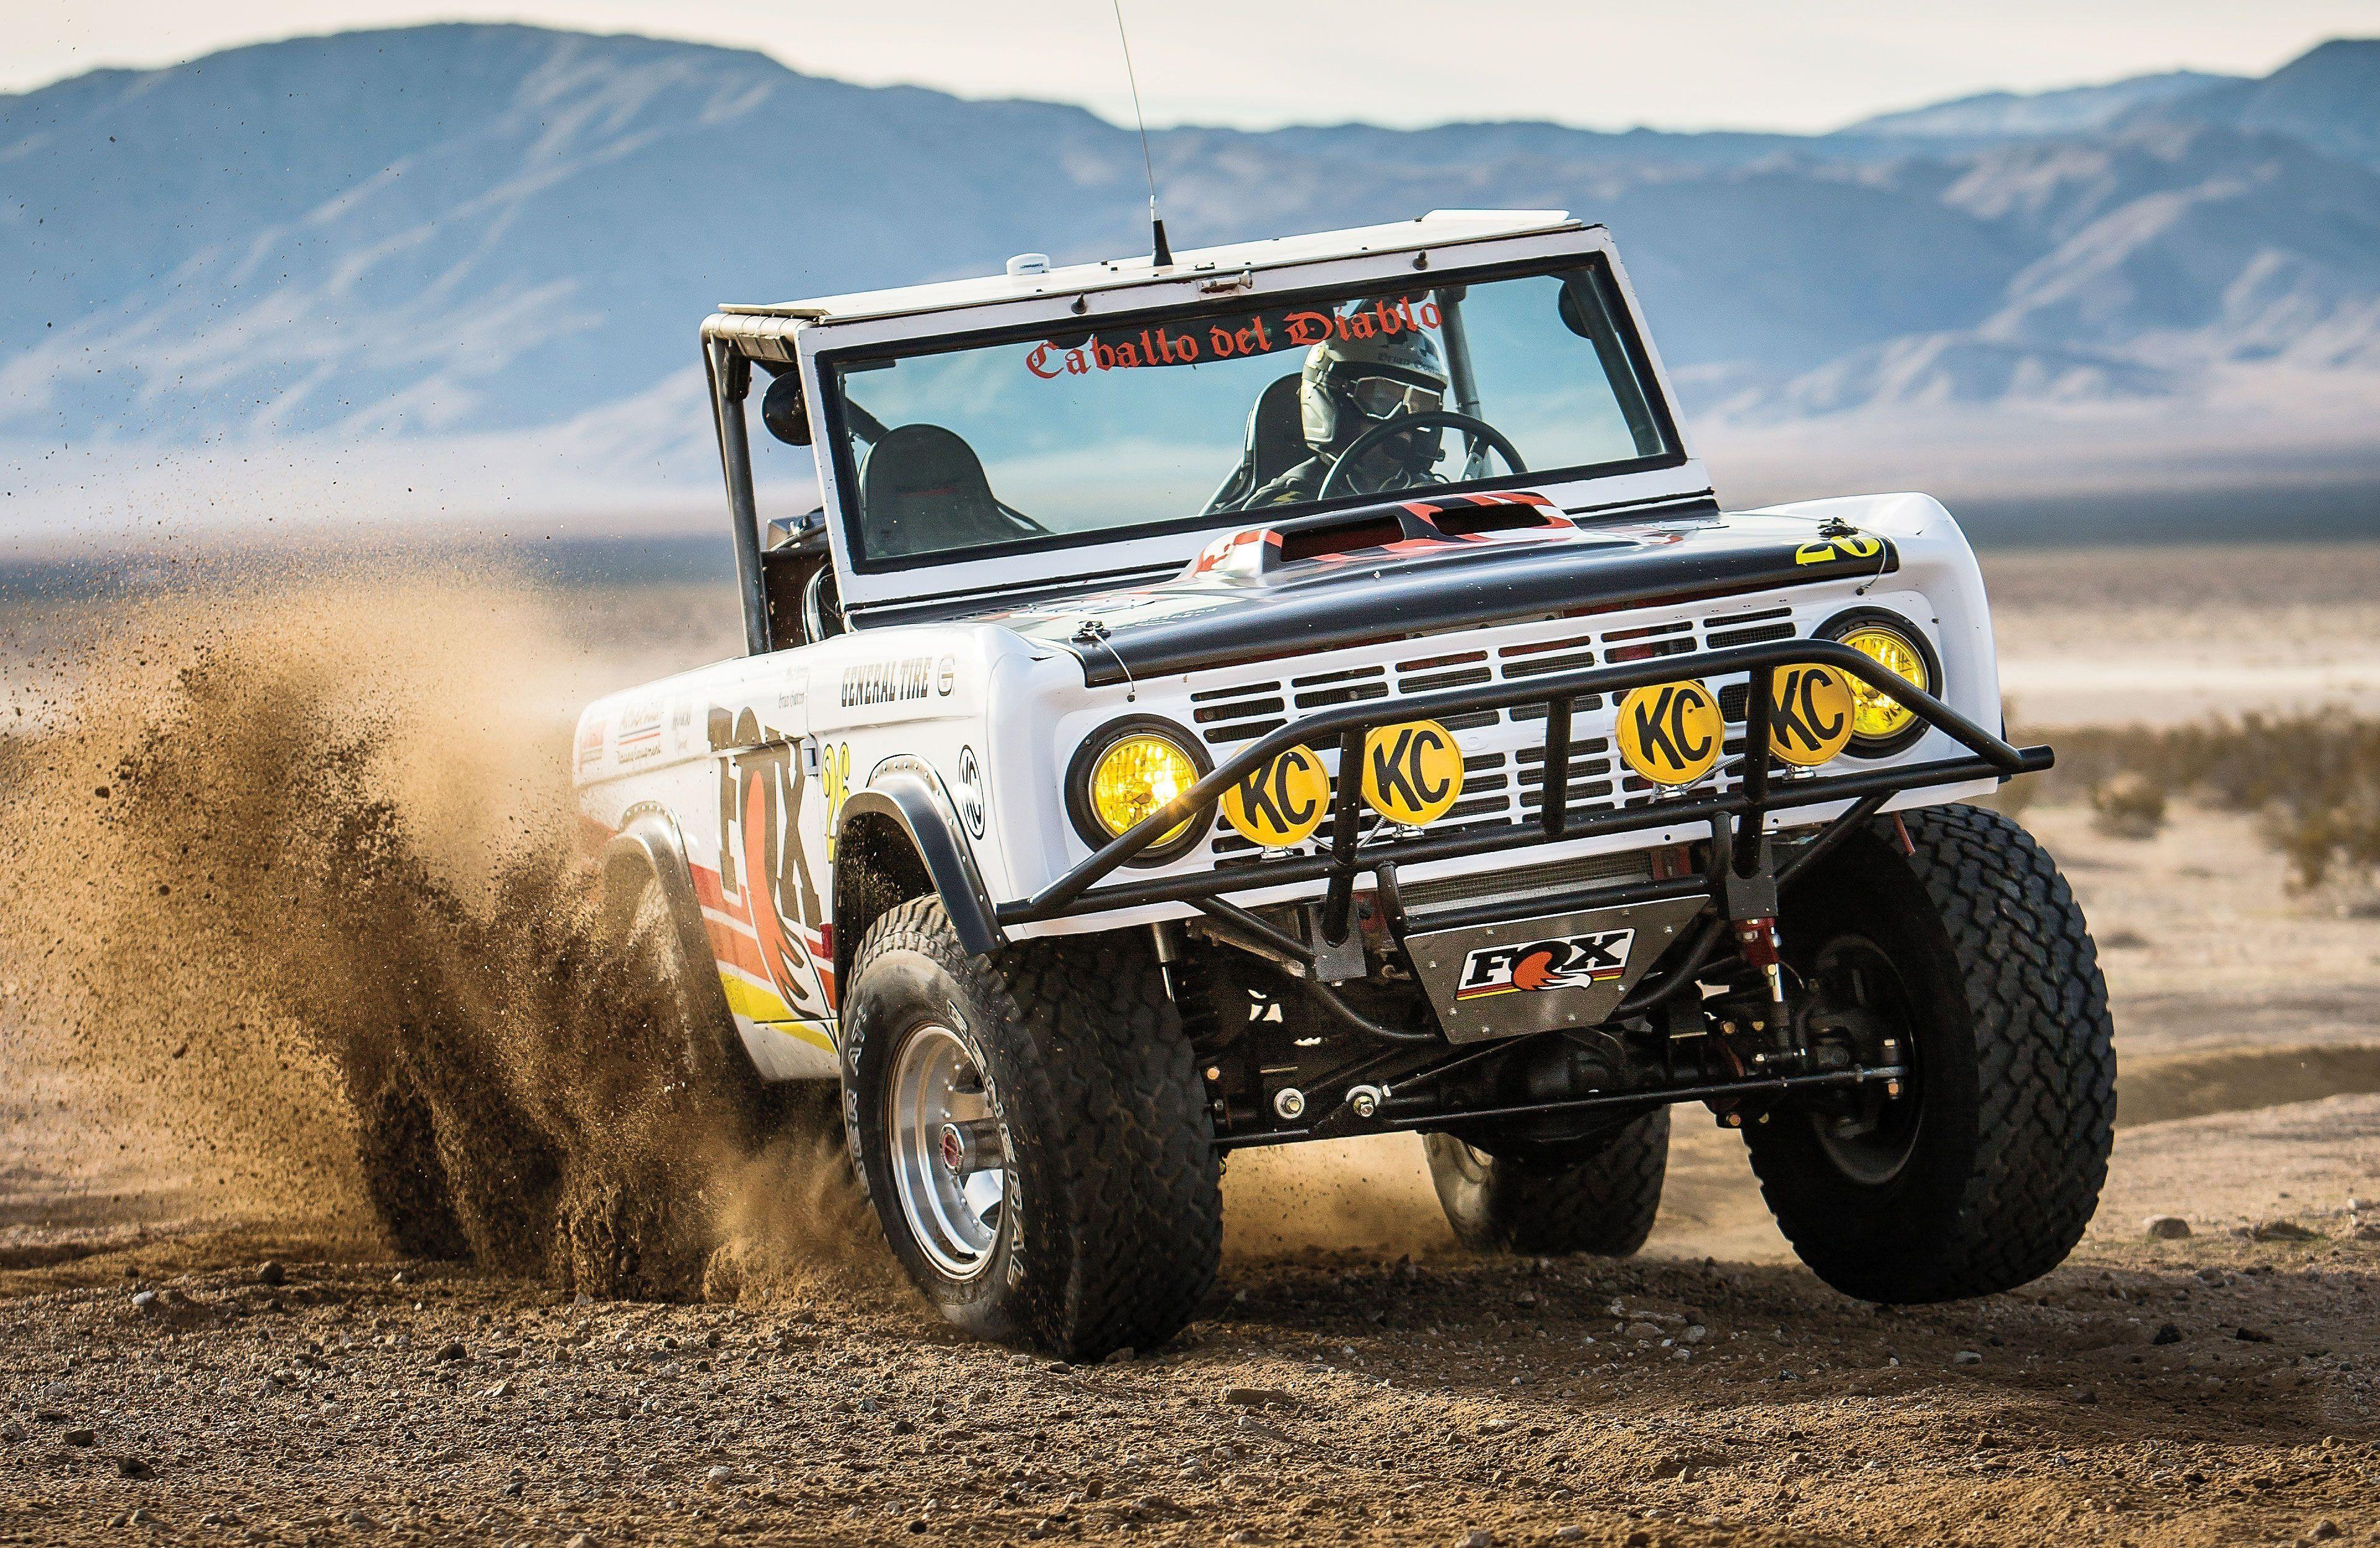 FORD BRONCO suv 4x4 truck wallpaper | 3840x2498 | 775471 | WallpaperUP